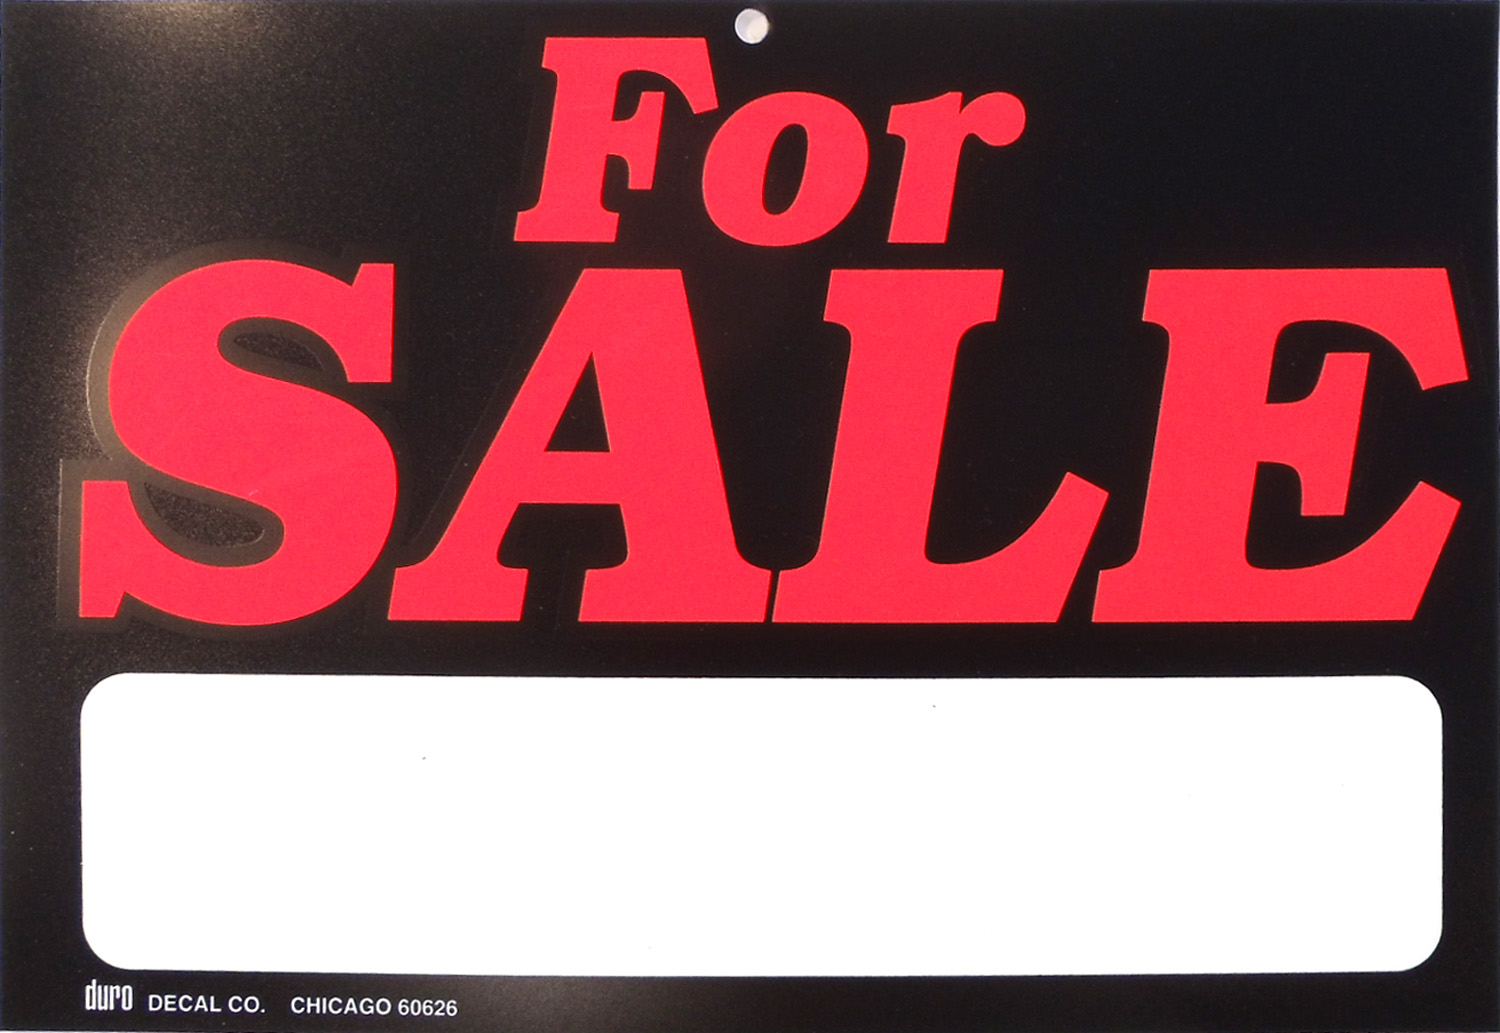 "DURO 11-1/2"" X 8"" PLASTIC FOR SALE SIGN WITH BLANK MARKER AREA"